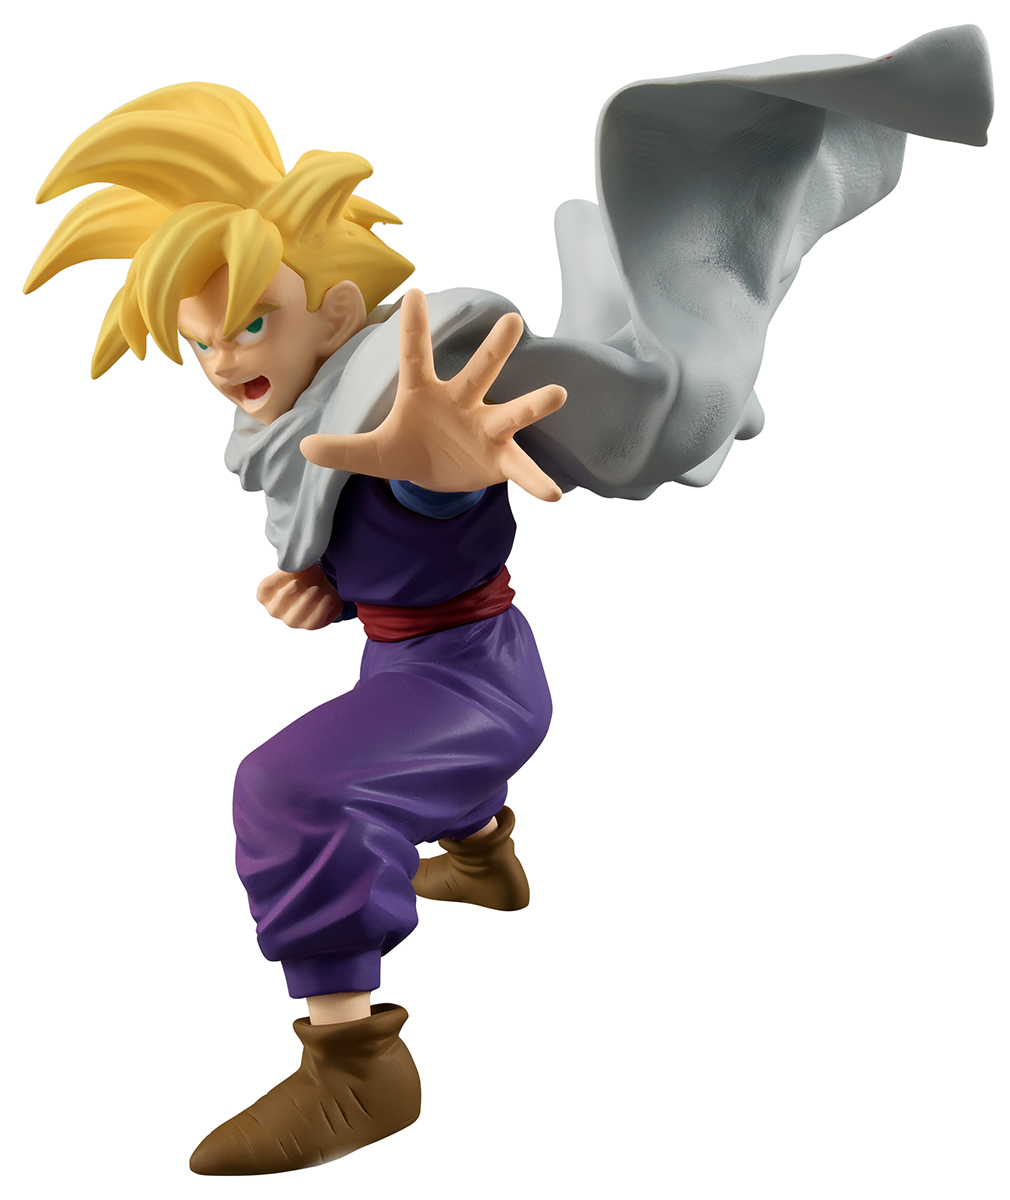 Bandai Фигурка Dragon Ball Styling Son Gohan bandai фигурка dragon ball z super master stars diorama the son goku